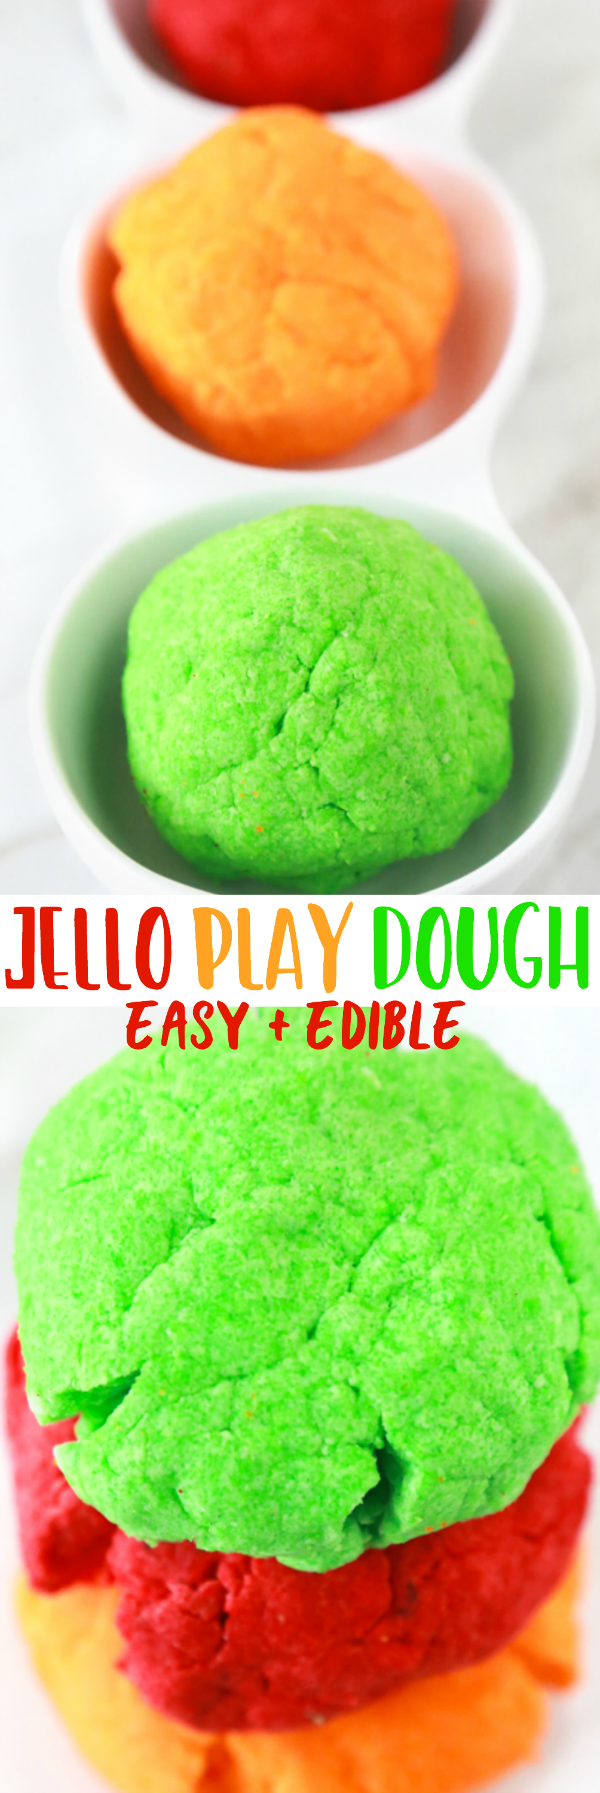 homemade jello playdough tutorial